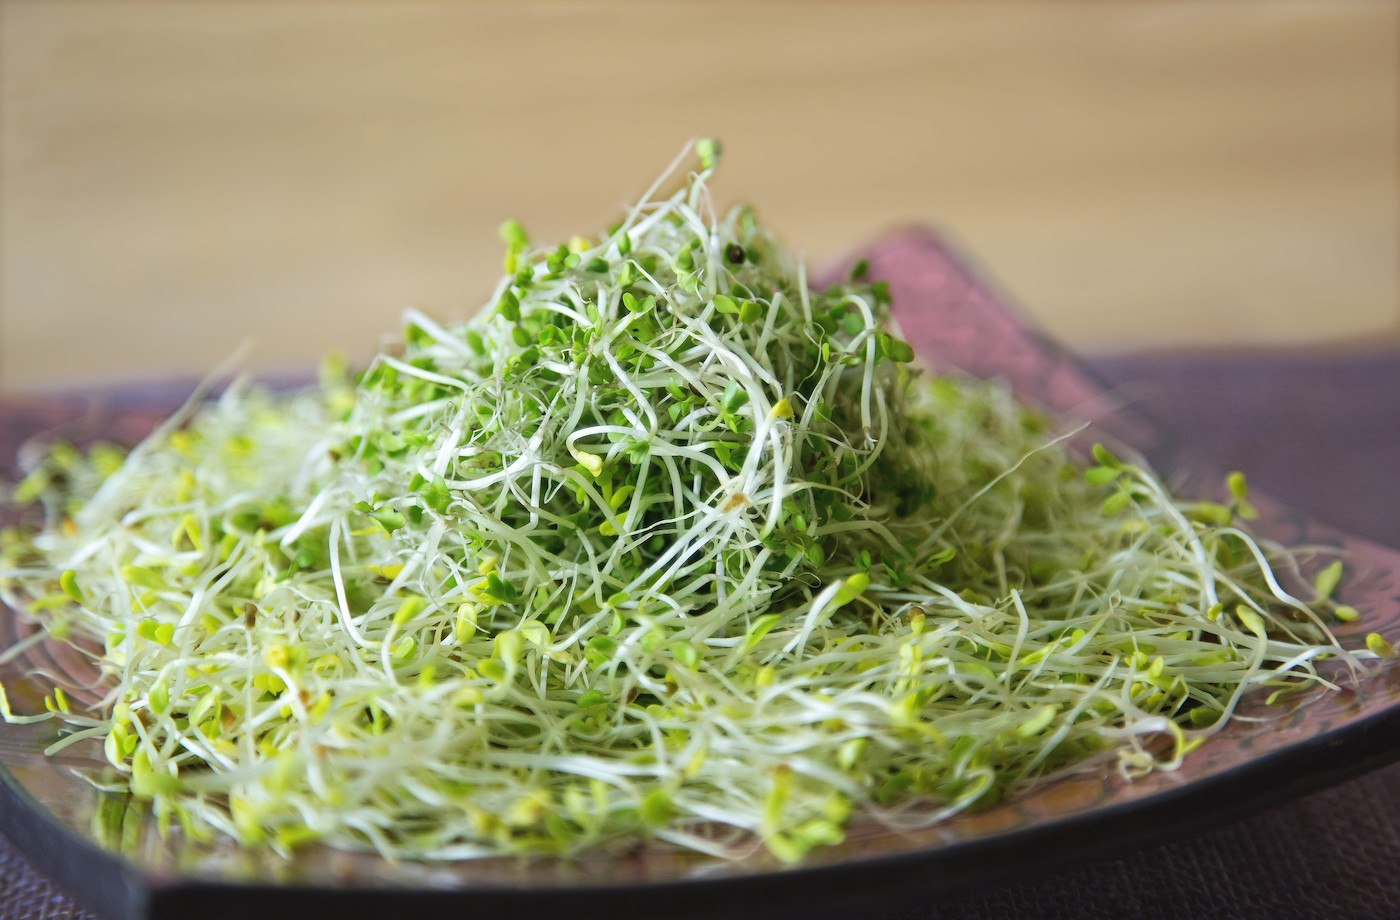 Thumbnail for 6 benefits of sprouts that will make you want to add them to your plate